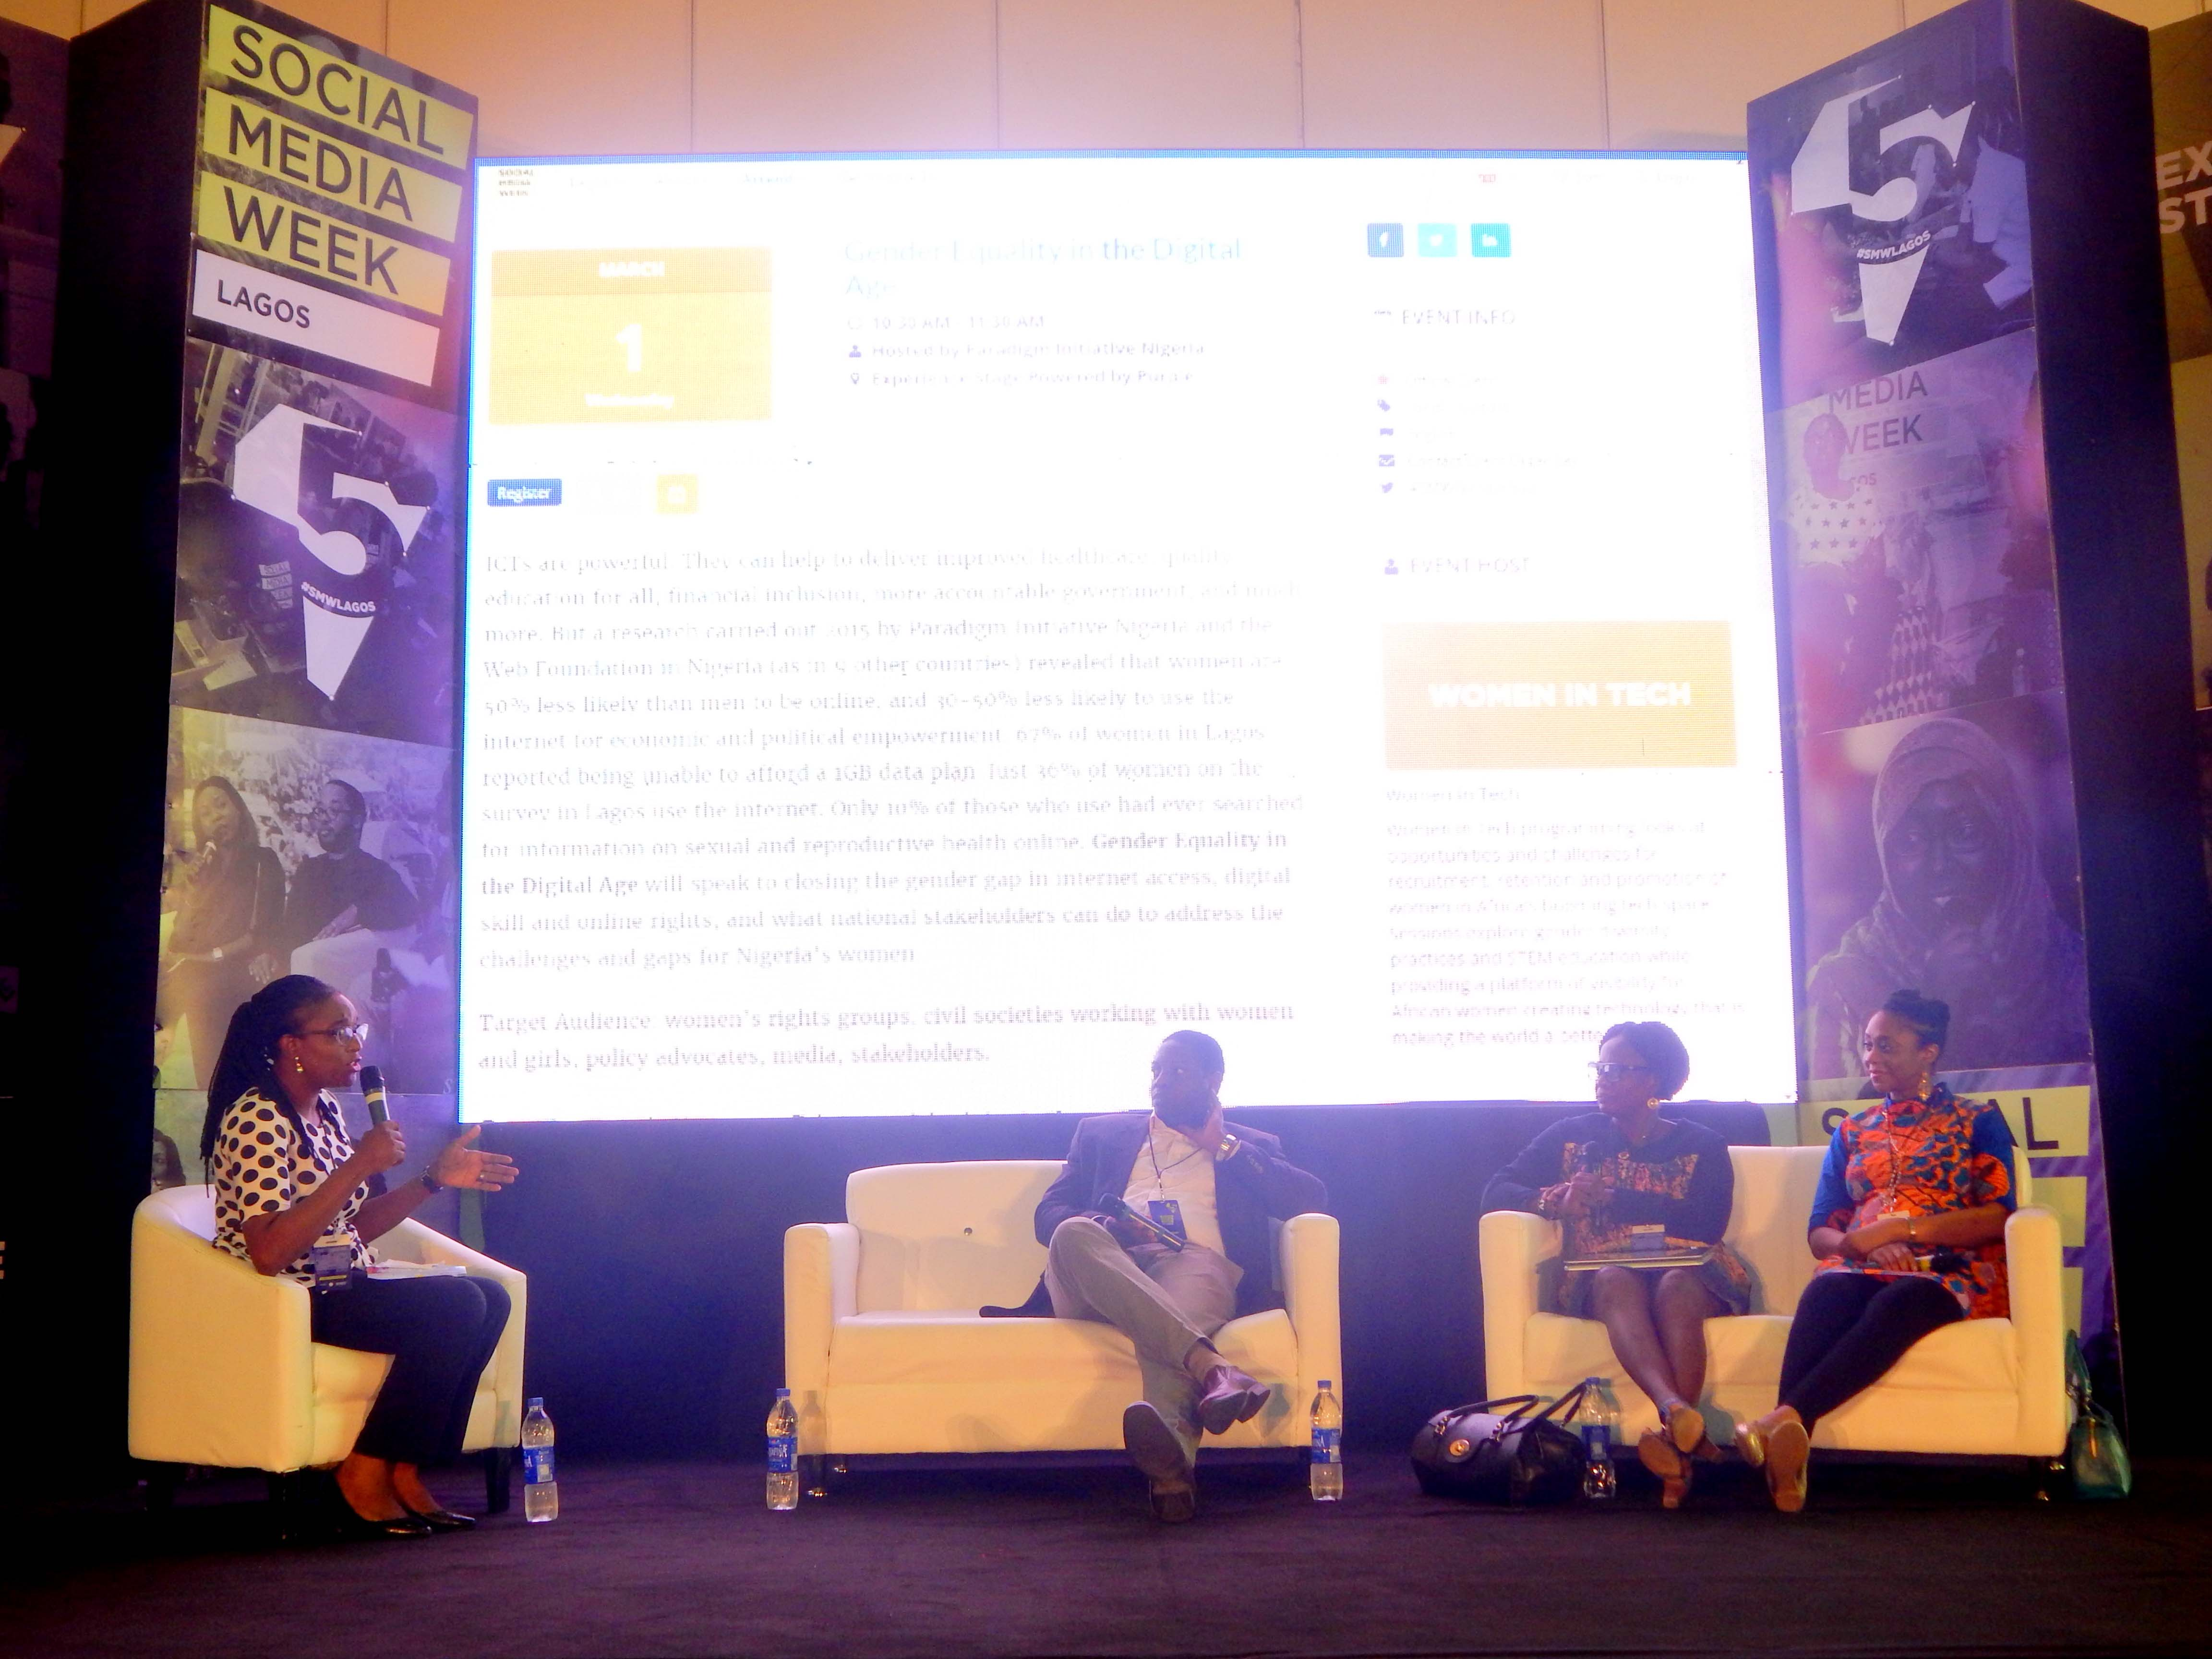 Event Report: Gender Equality in the Digital Age at Social Media Week Lagos 2017